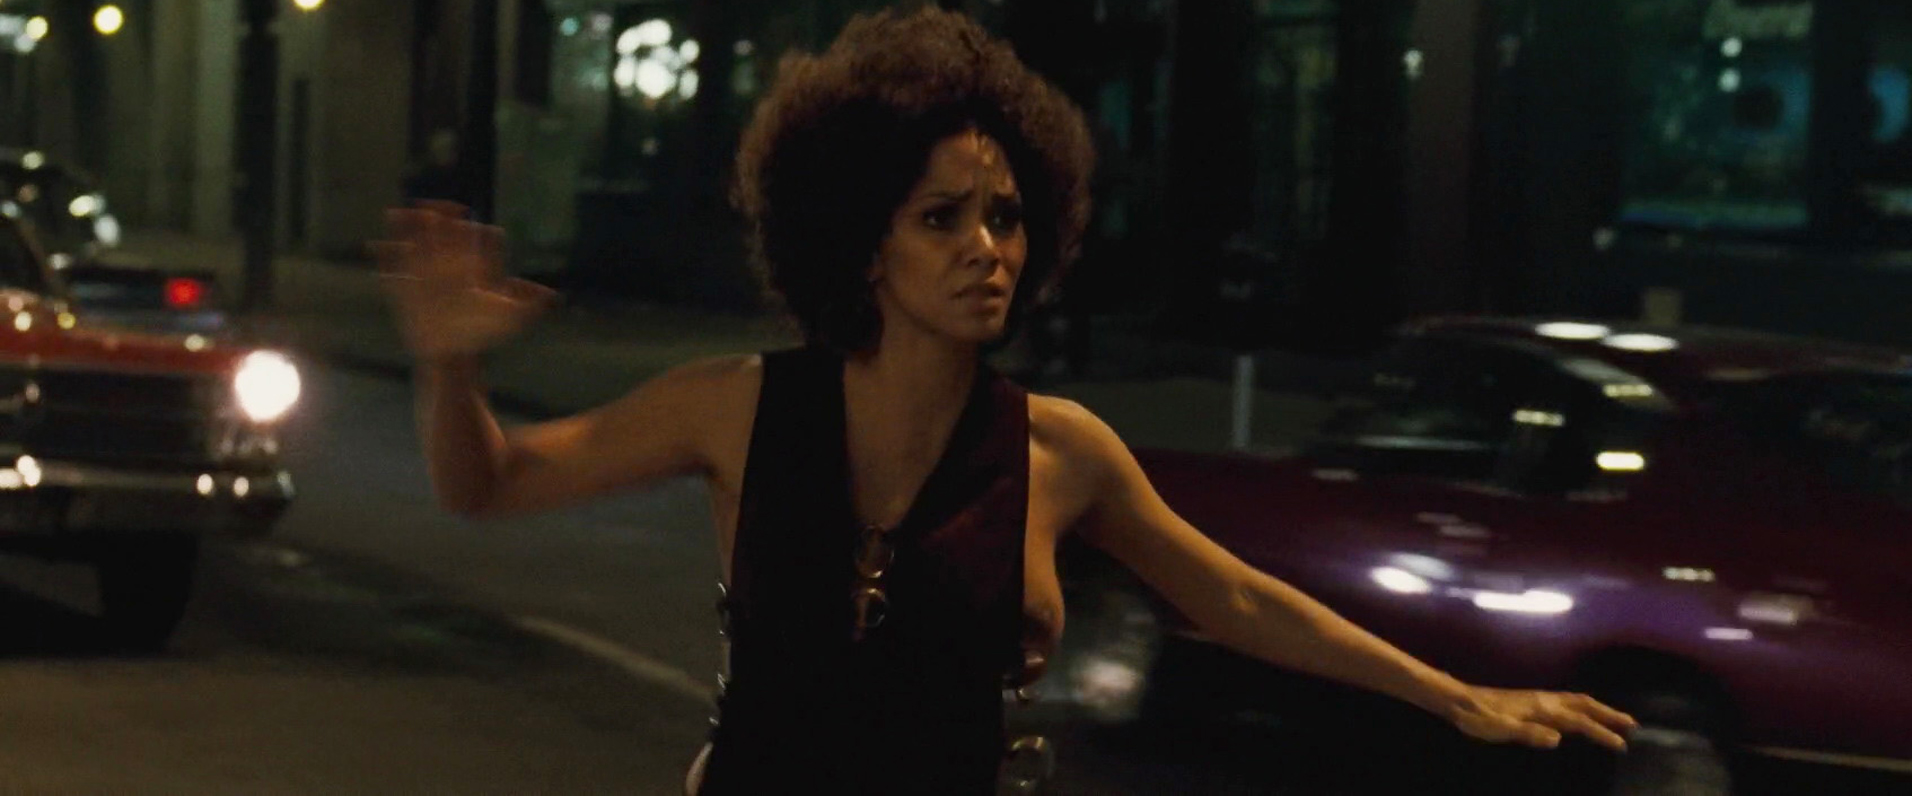 Halle berry movies frankie and alice